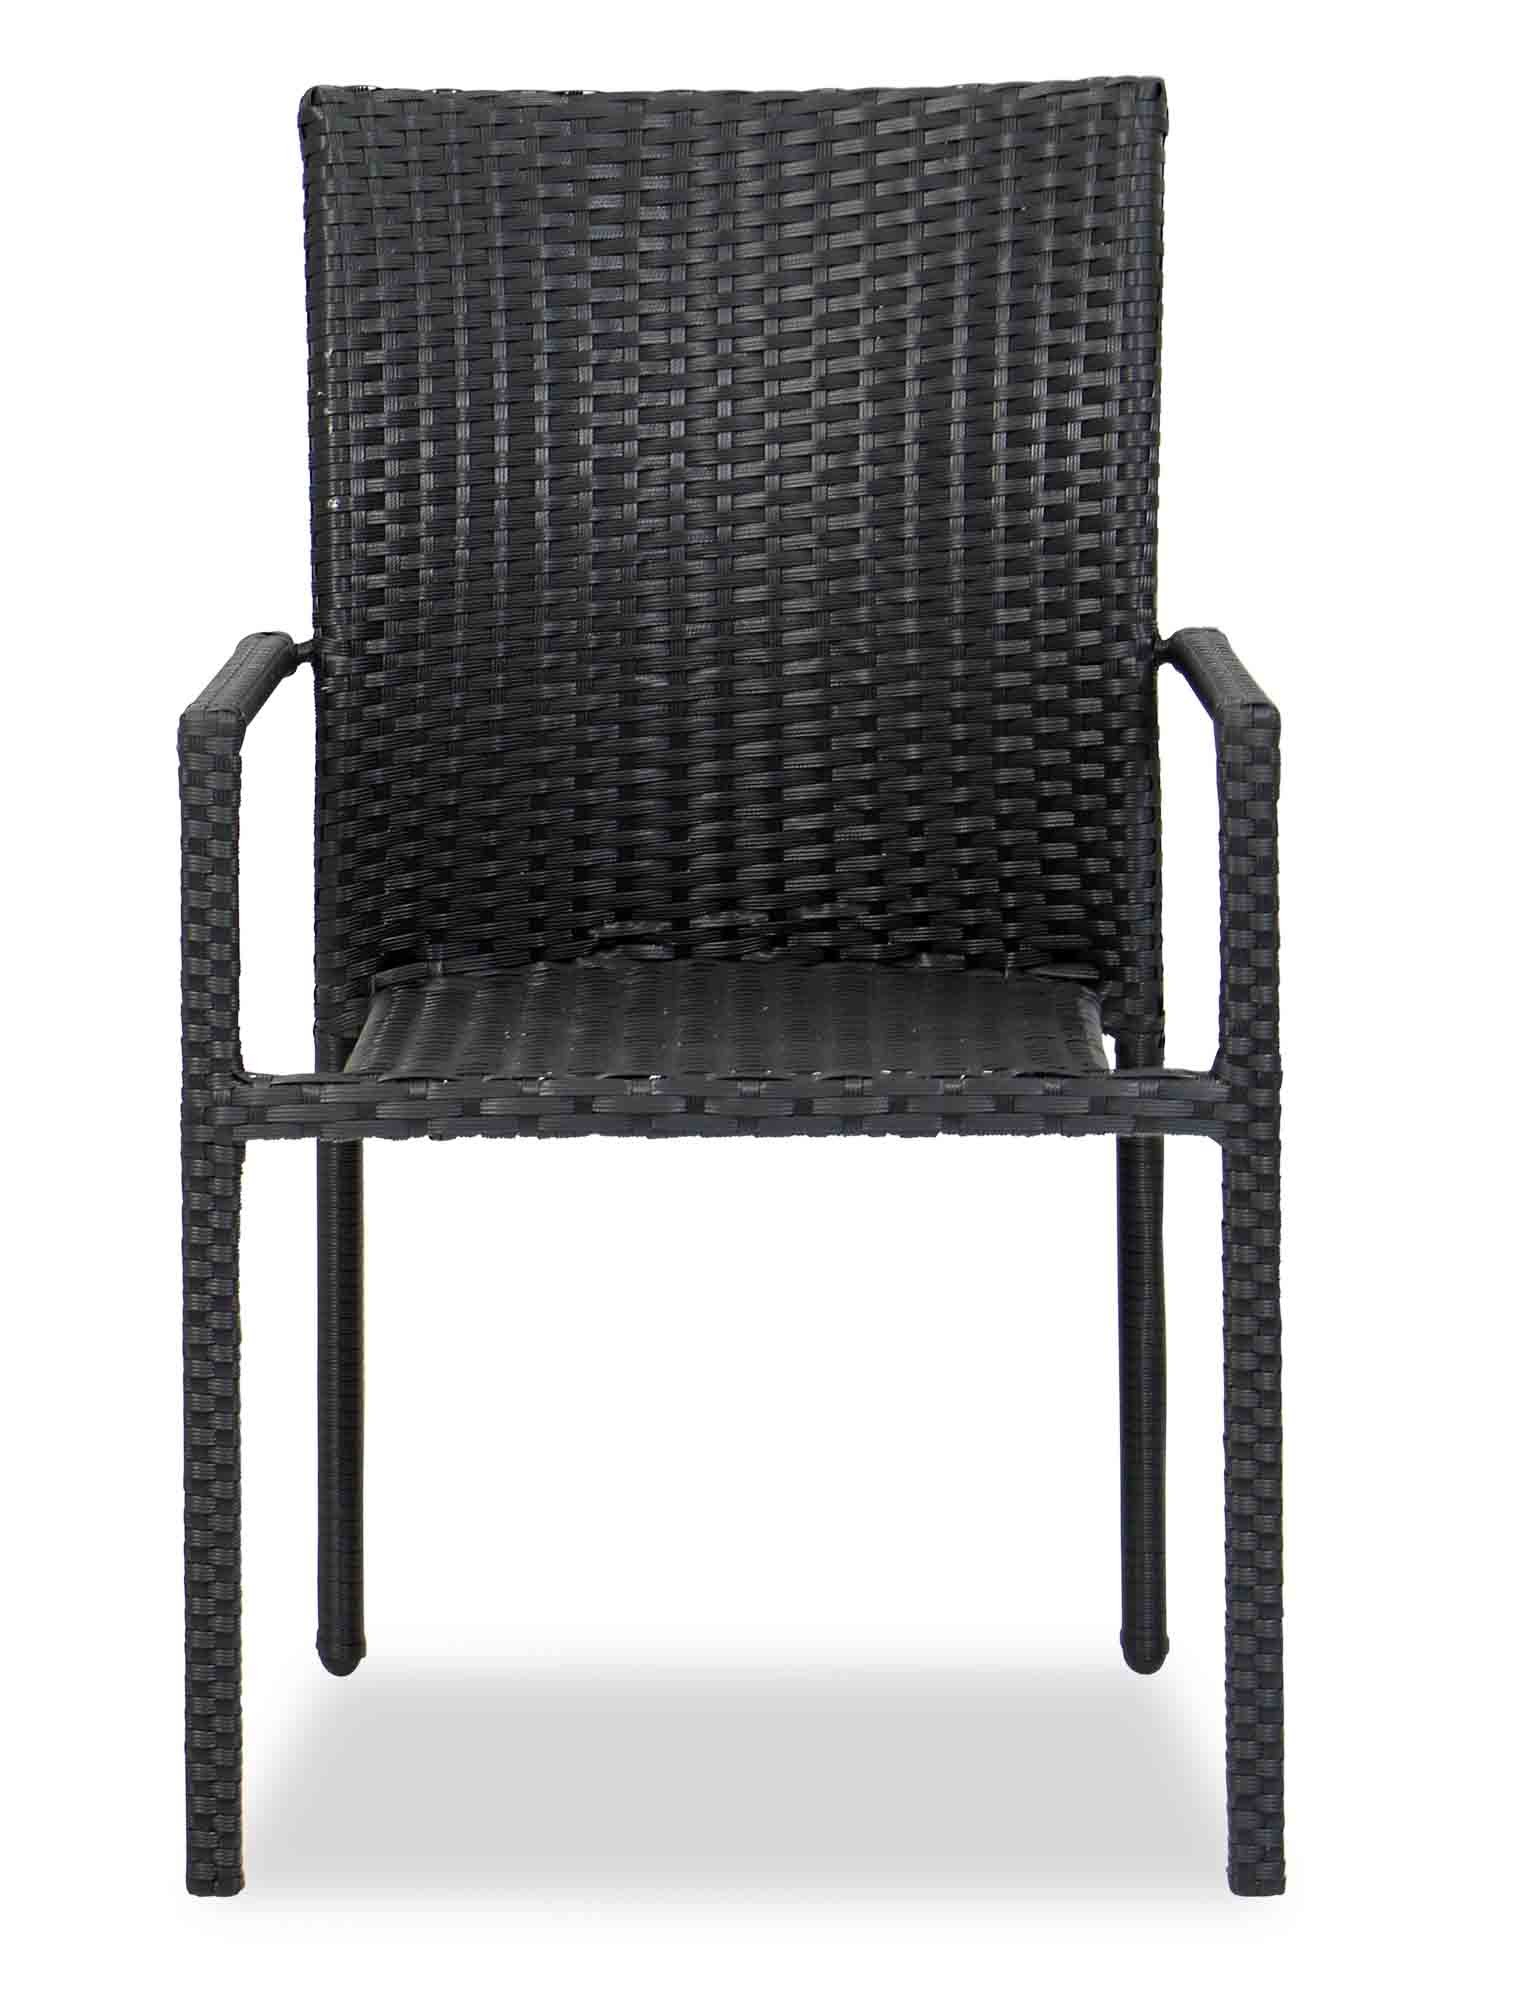 Wakiky Outdoor Dining Chair Furniture & Home Décor